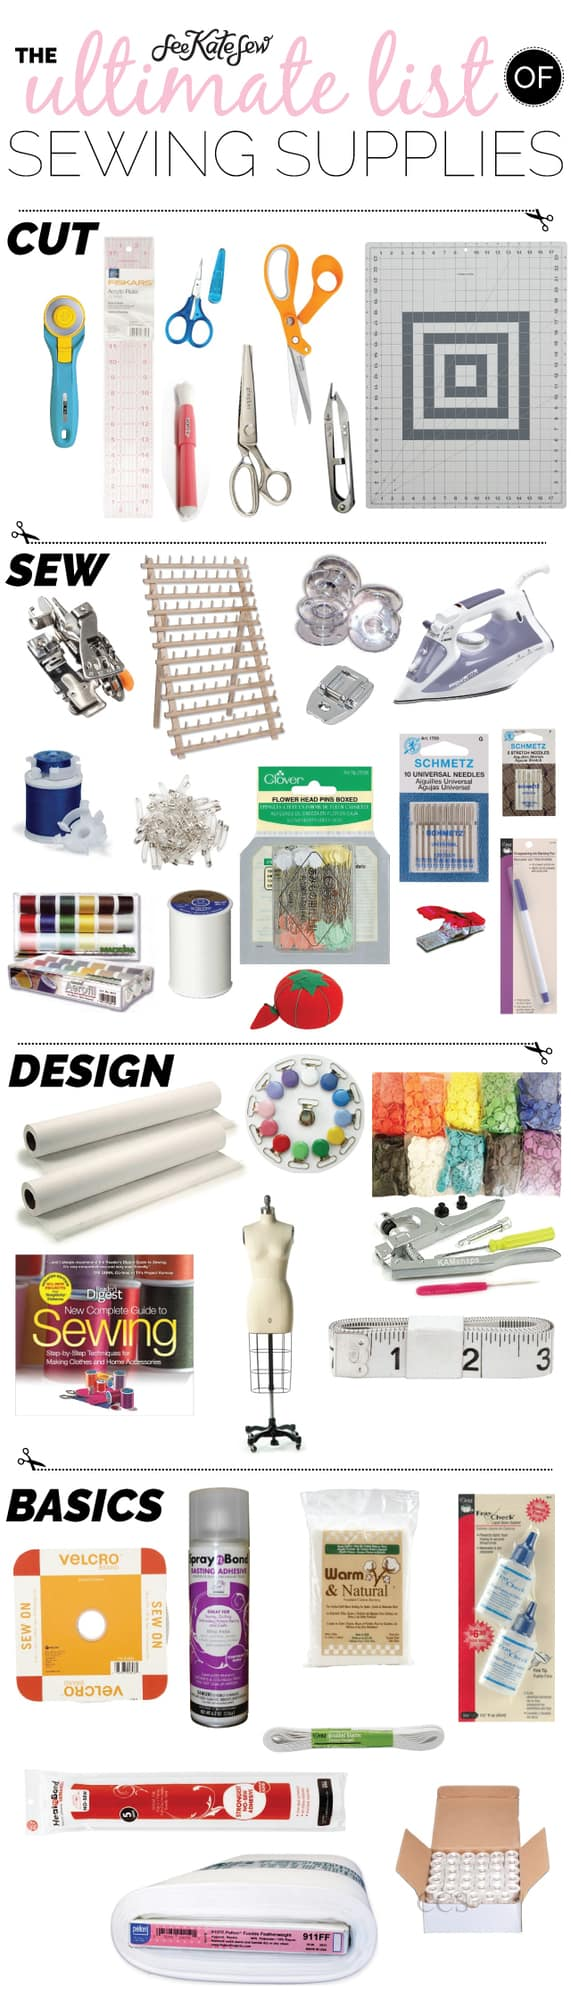 The Ultimate List of Sewing Supplies | my favorite sewing supplies | sewing must haves | must have sewing supplies | sewing supplies for beginners | sewing supply list | basic sewing supplies || See Kate Sew #sewingsupplies #sewingtips #beginnersewist